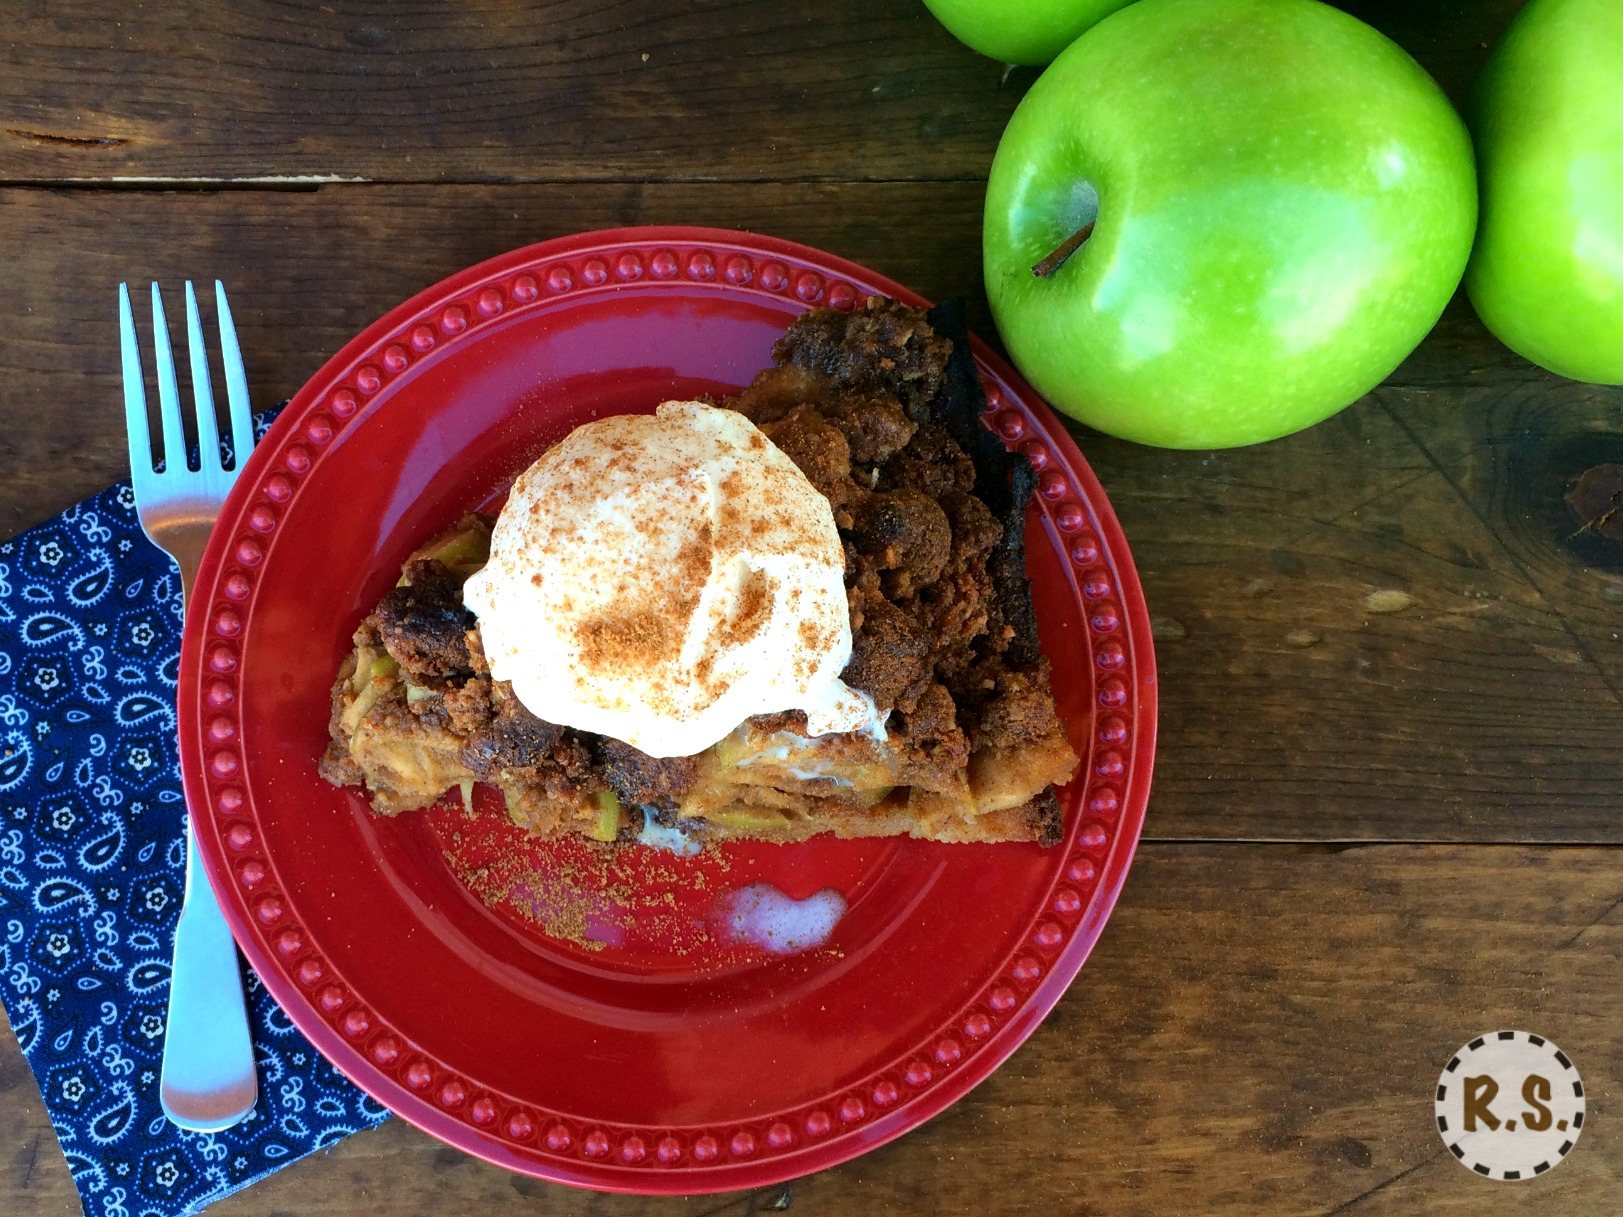 Savor the rich flavors in this dutch apple pie. The warm apple filling, to its rich crumble topping. Every bite of this pie will make you see how healthy and gluten free tastes the best!